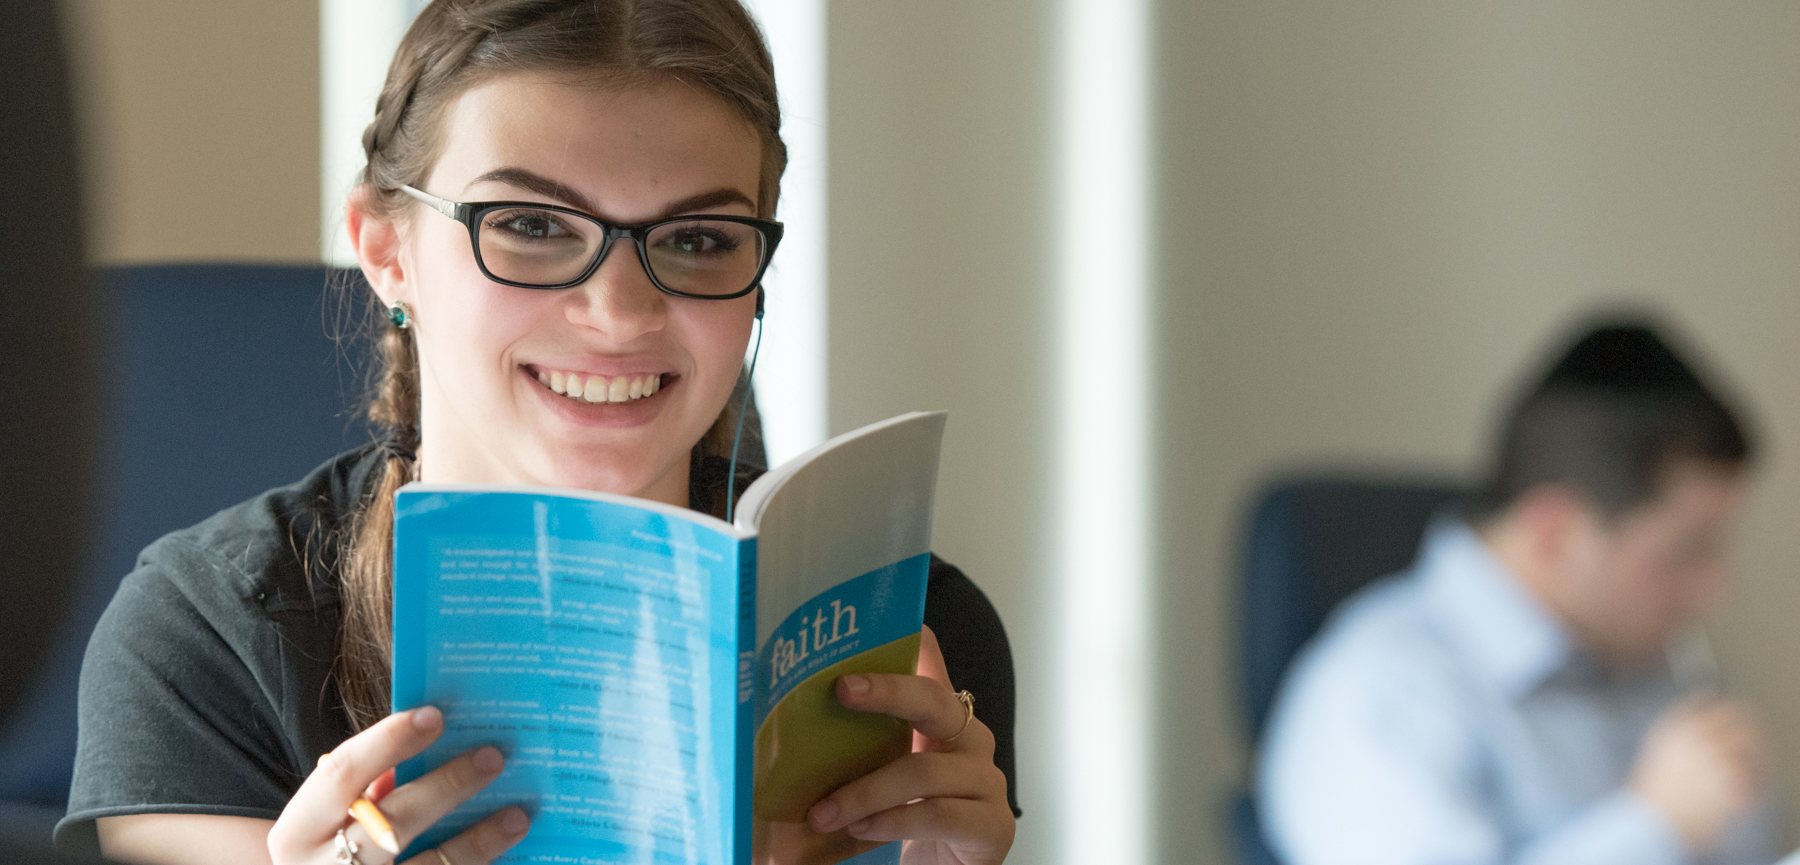 Female Student Peers over Text Book